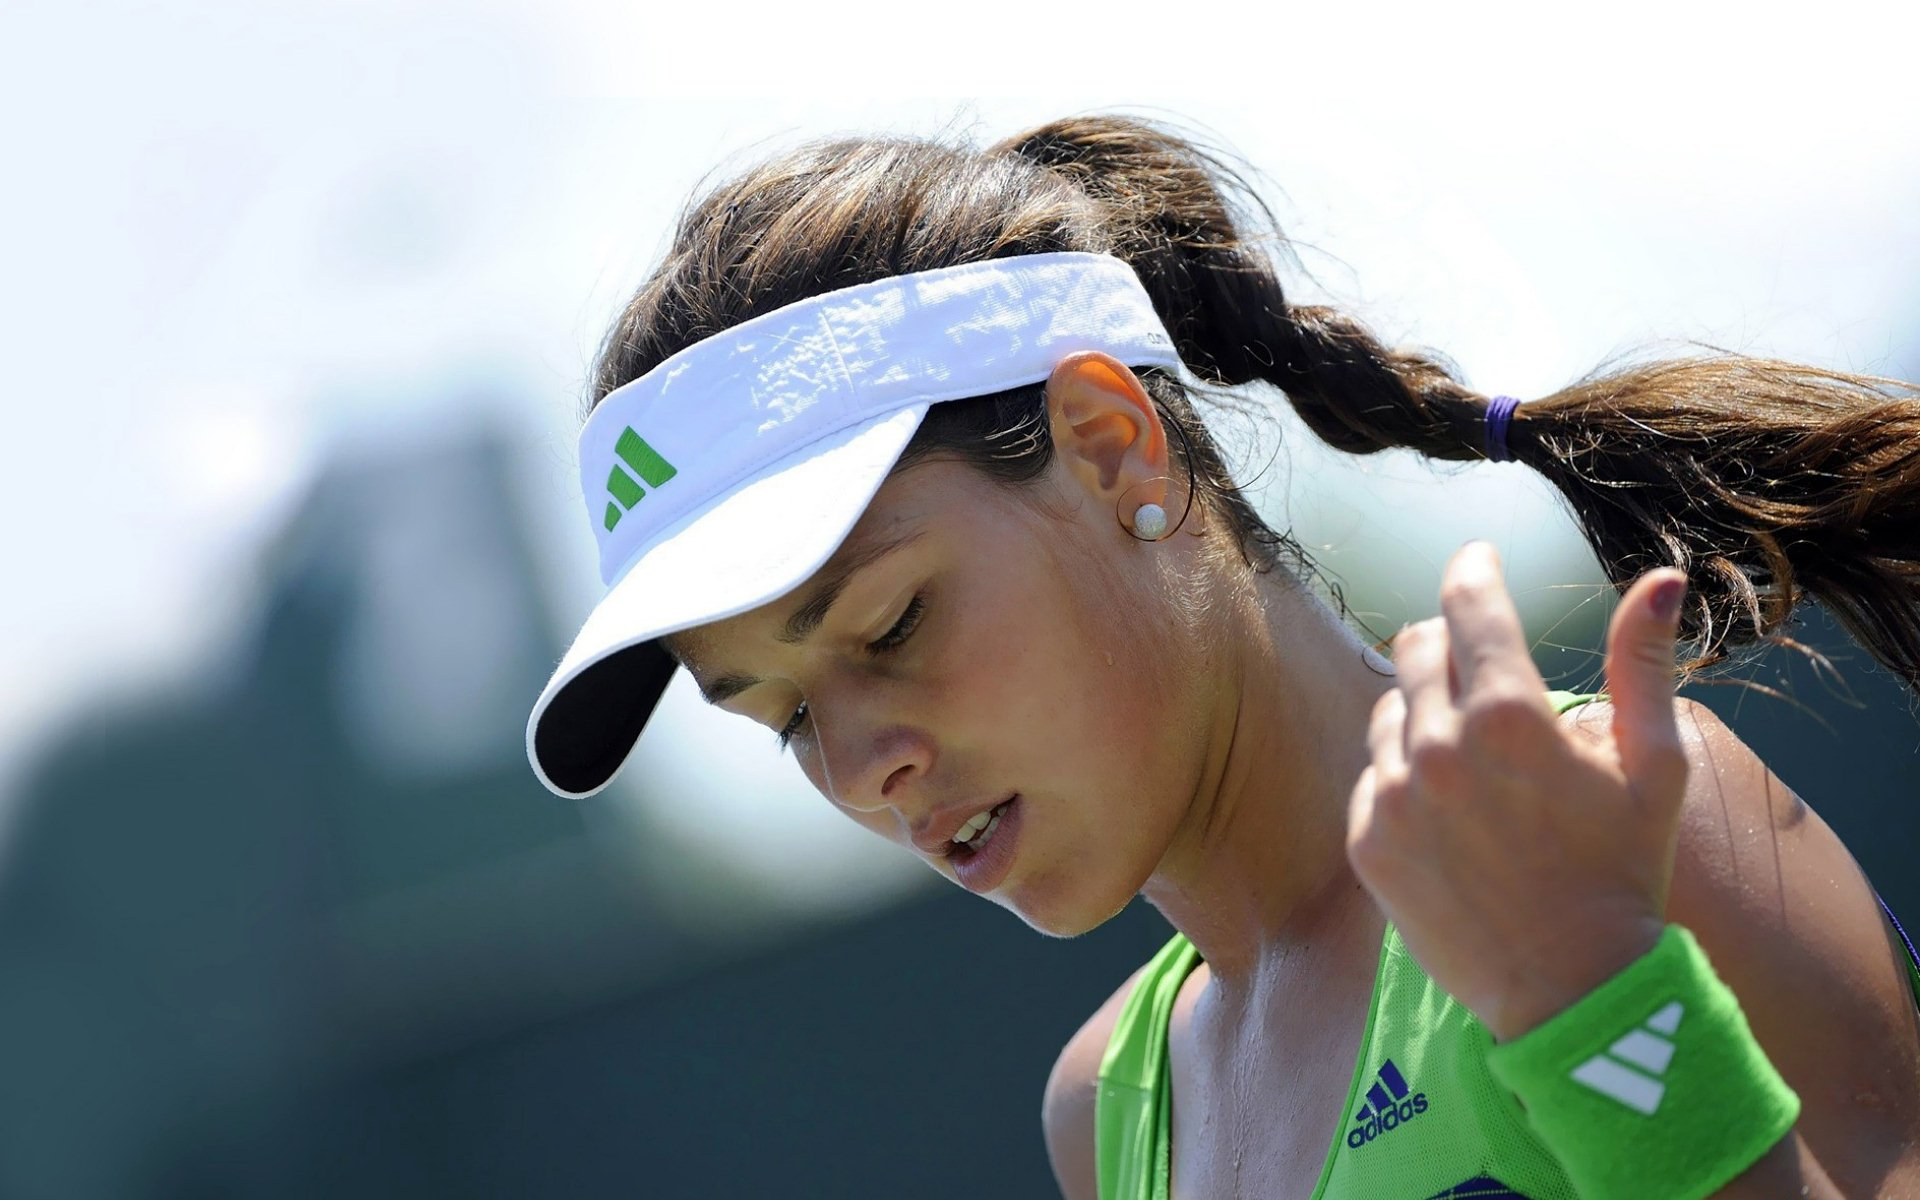 Sport Wallpaper Cute: Ana Ivanovic HD Wallpaper